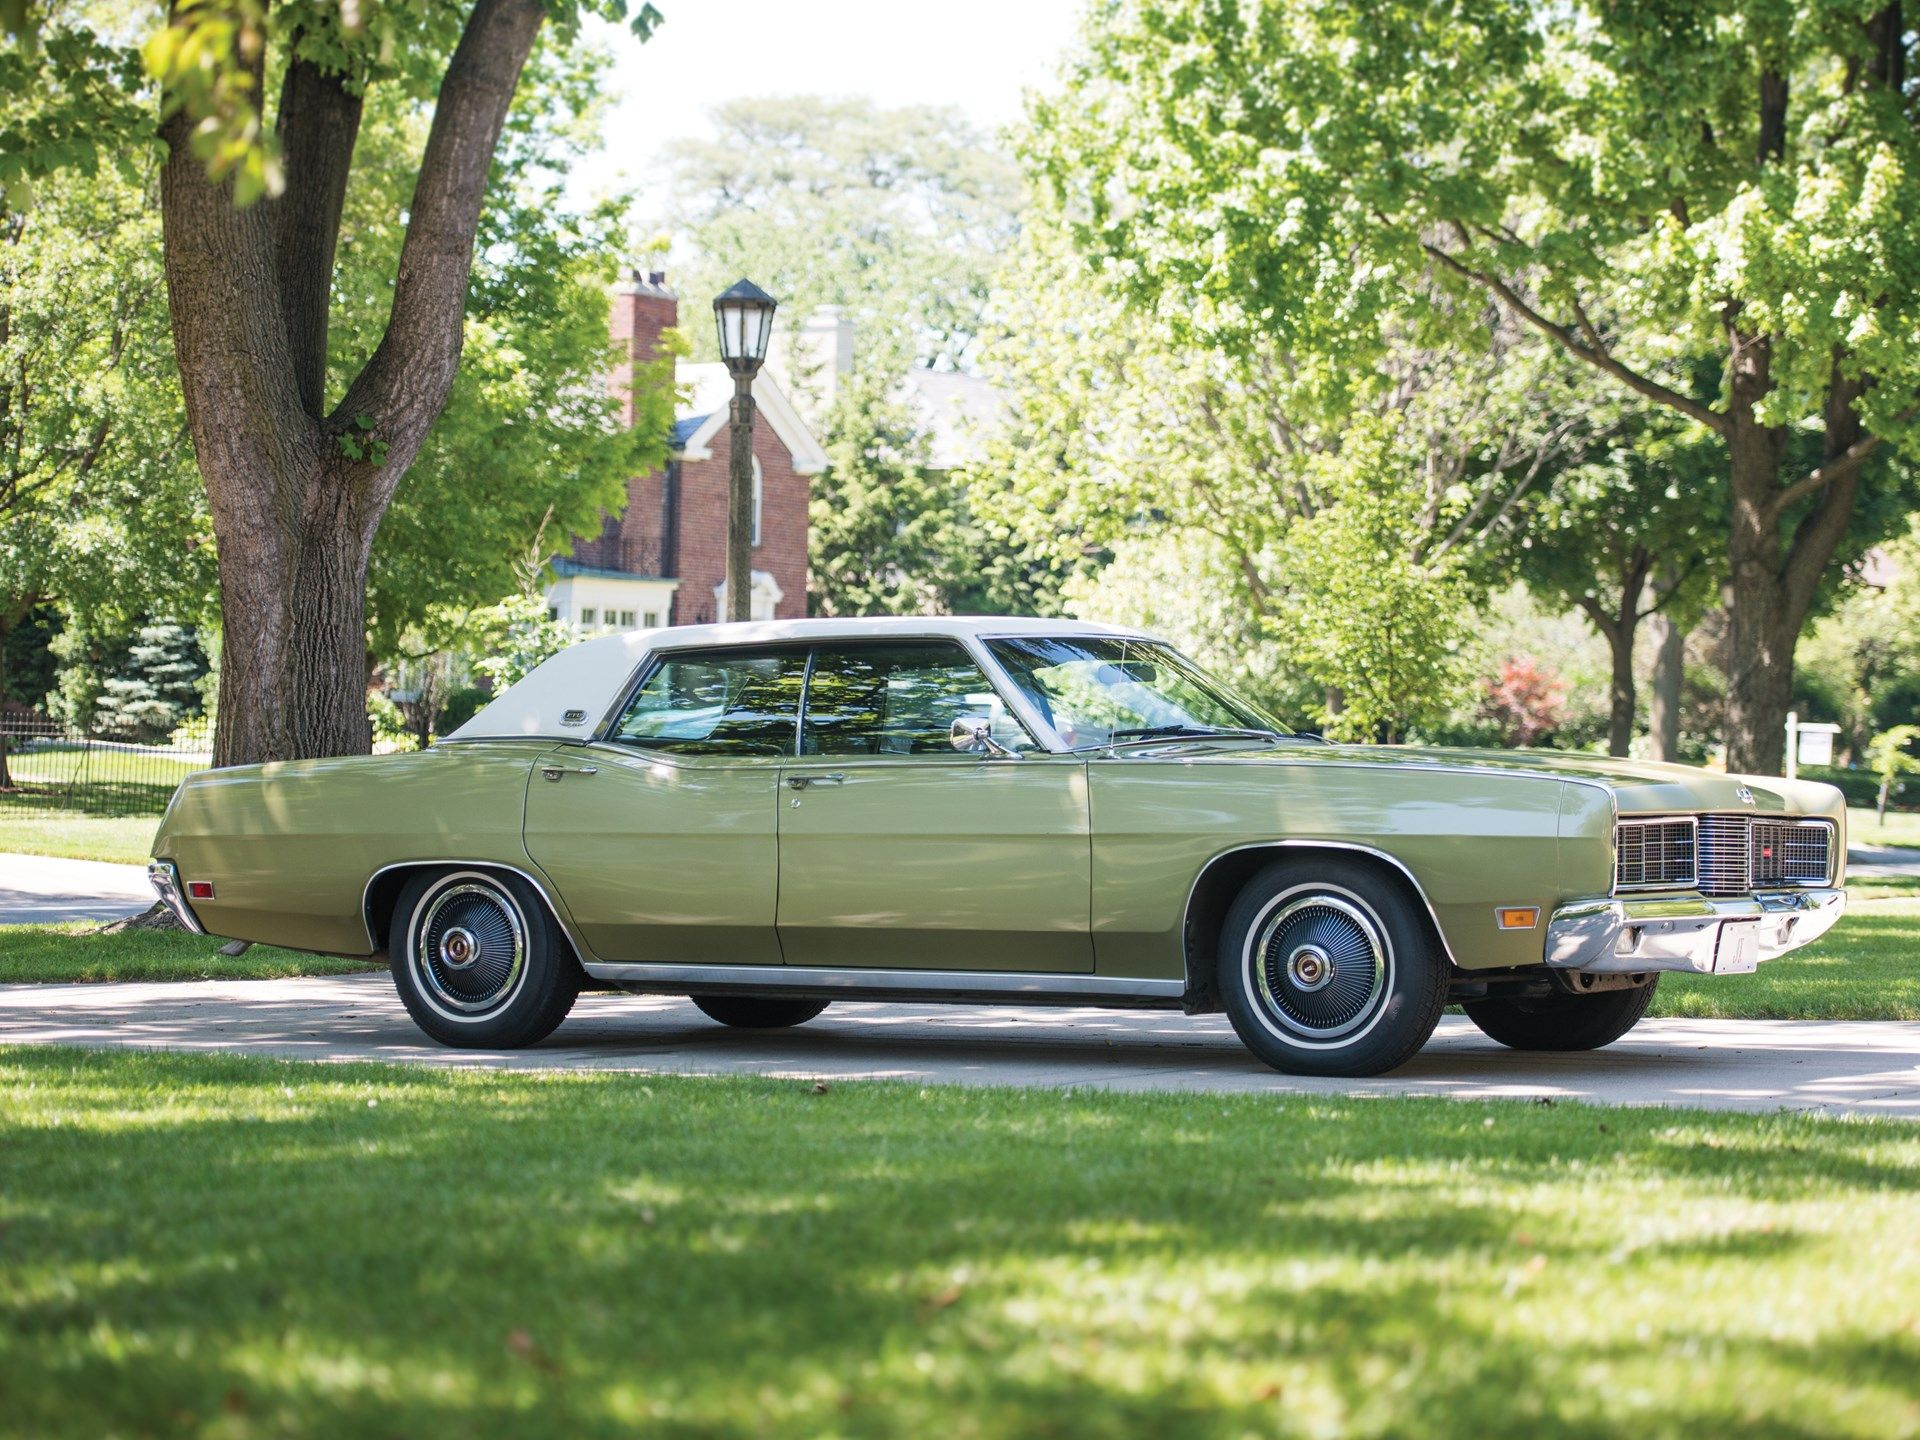 1970 Ford Ltd Hardtop Sedan Yellow With White Vinyl Roof Daddy S I Drove It For Awhile Had About 336 000 Miles On It When He S Ford Ltd Sedan Classic Cars